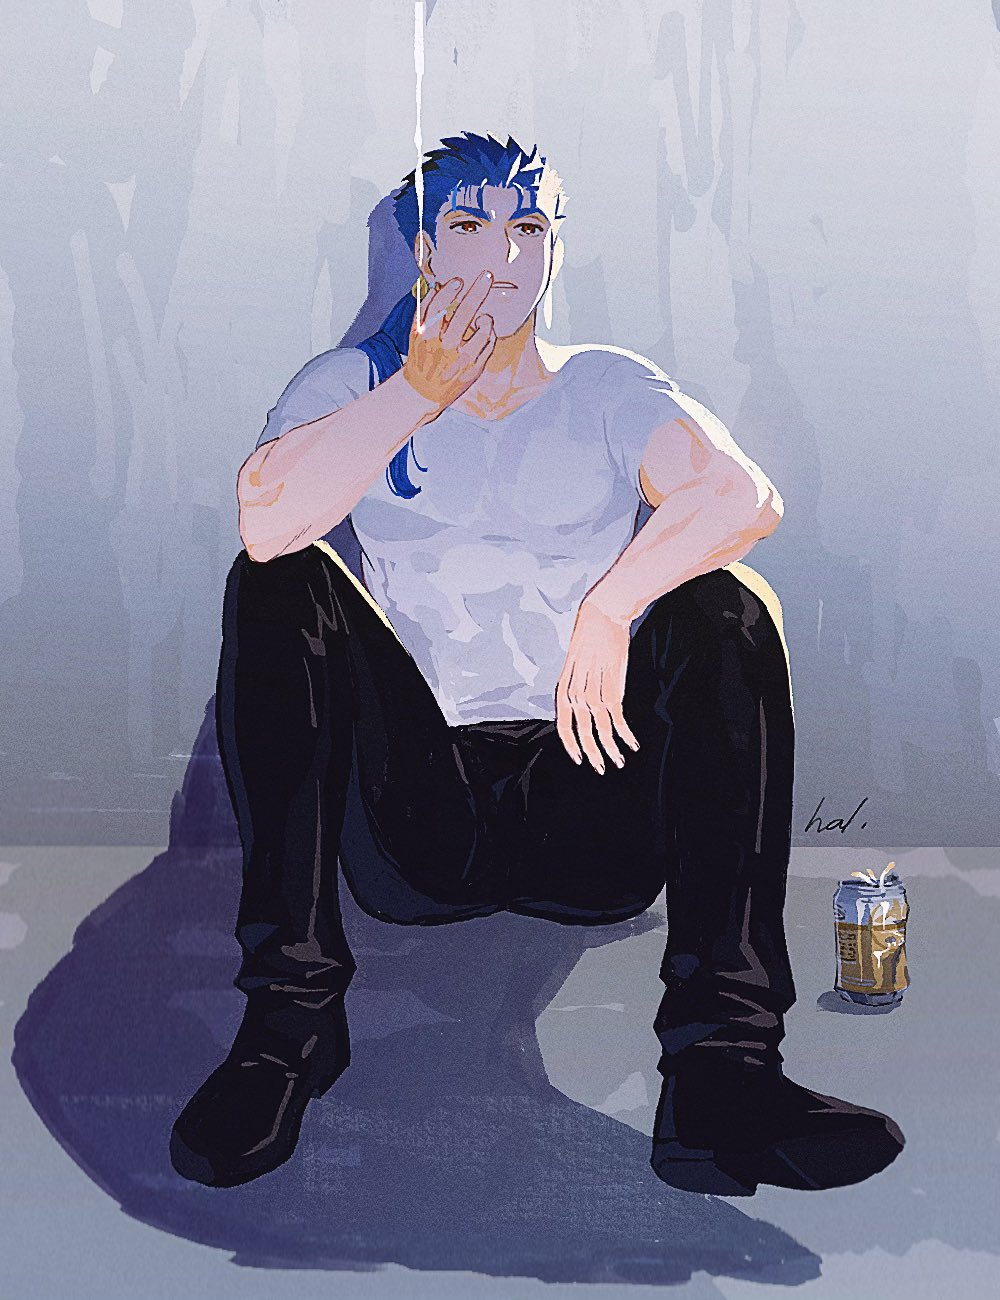 1boy alternate_costume beer_can biceps blue_hair can cigarette cu_chulainn_(fate)_(all) cu_chulainn_(fate/stay_night) earrings fate/stay_night fate_(series) hal_(haaaalhal) highres jewelry leather leather_pants long_hair looking_up male_focus muscular muscular_male open_mouth pants ponytail red_eyes shirt short_sleeves signature sitting smoke smoking solo spiky_hair t-shirt v-neck